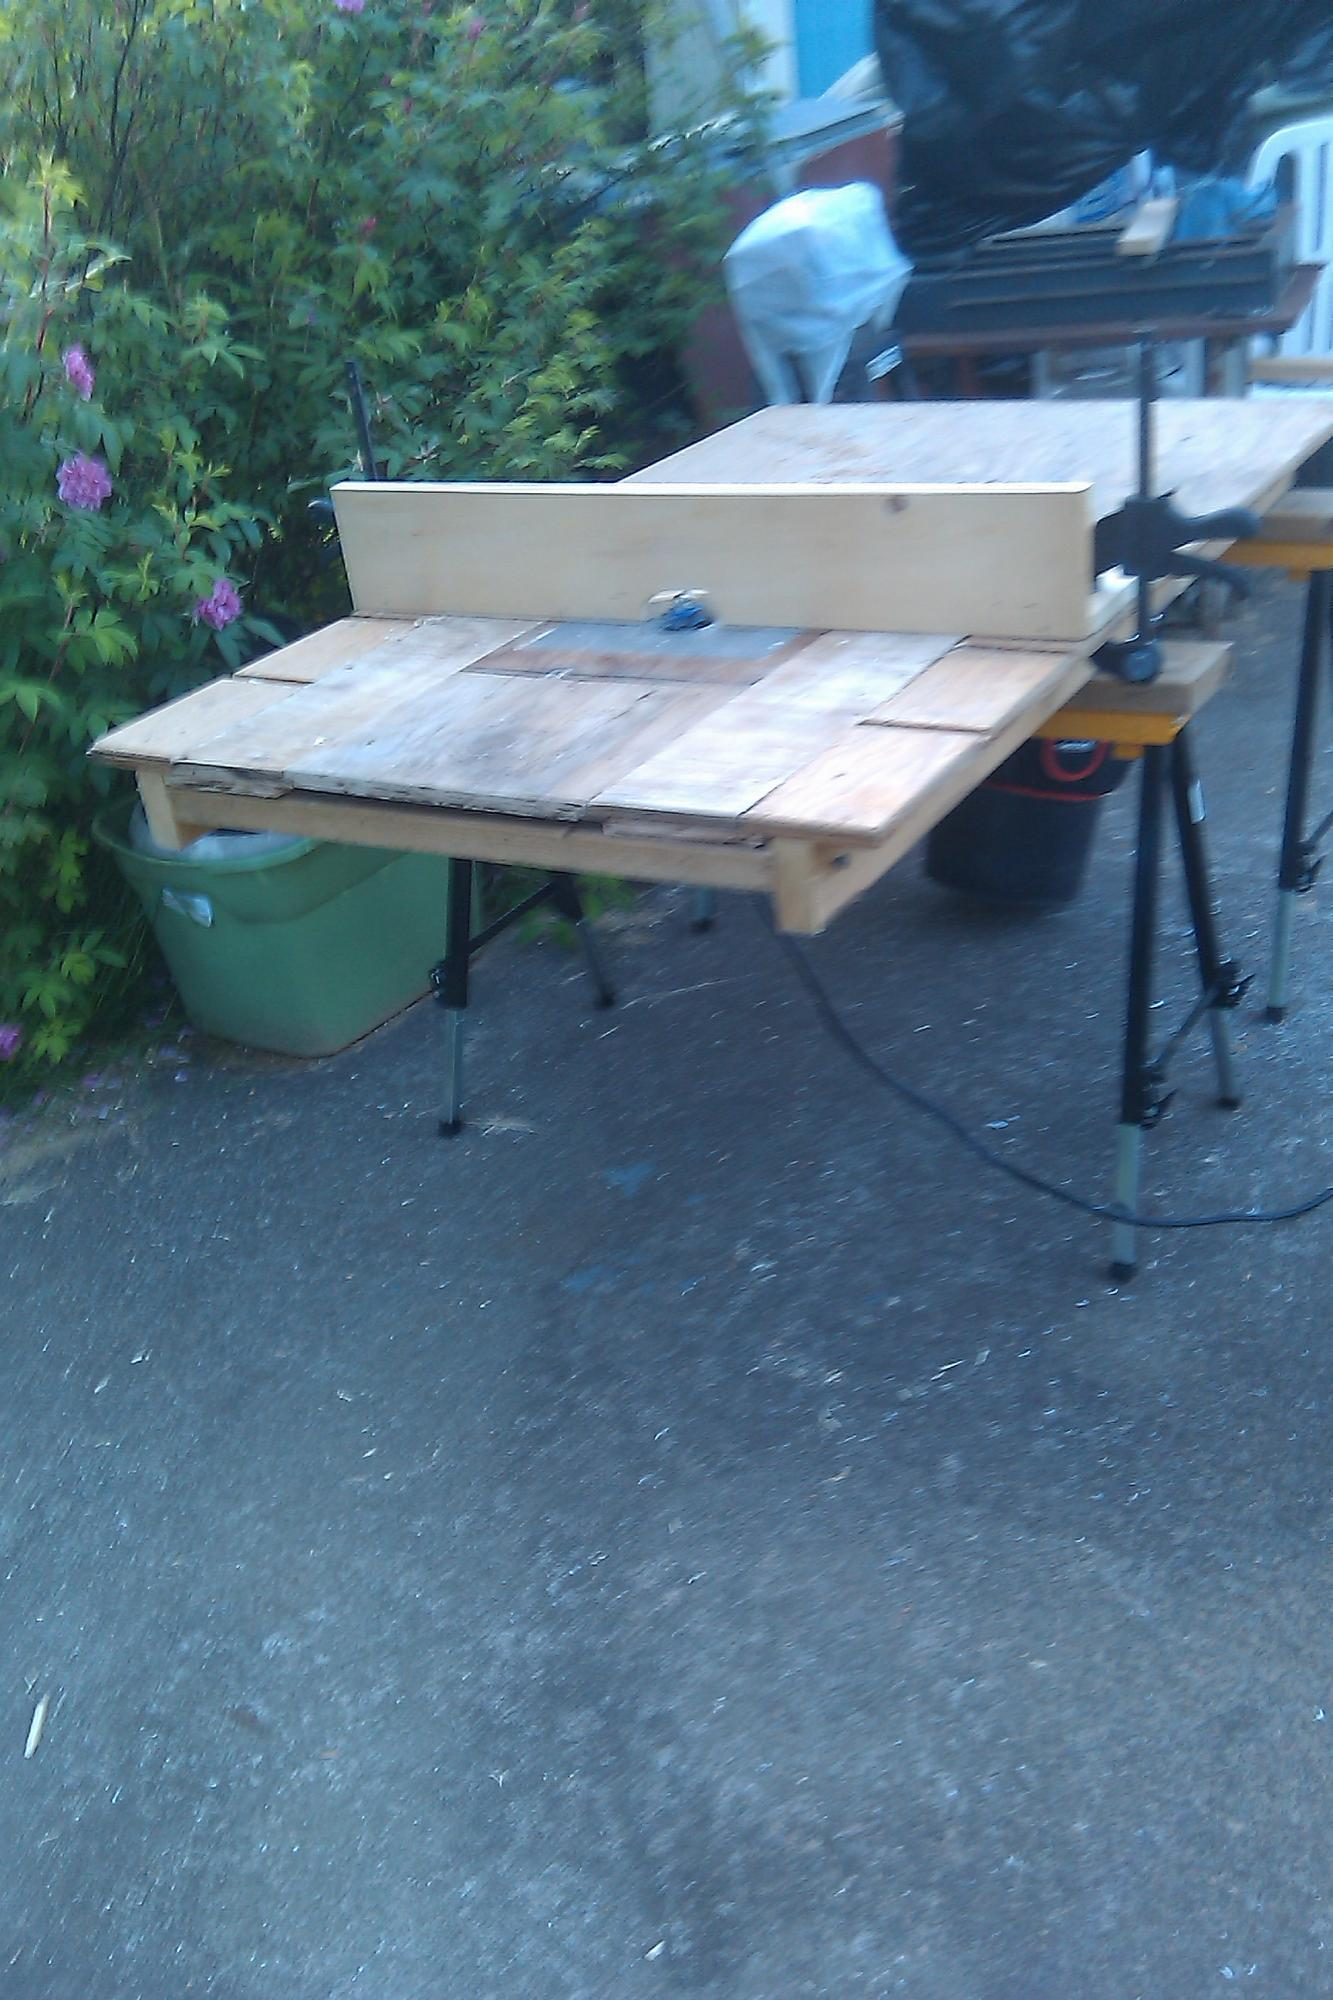 Router table dimensions t tracks mitres router forums i have it planed out modularly as a combo work table router table crosscut saw table rip saw table jointer table greentooth Gallery